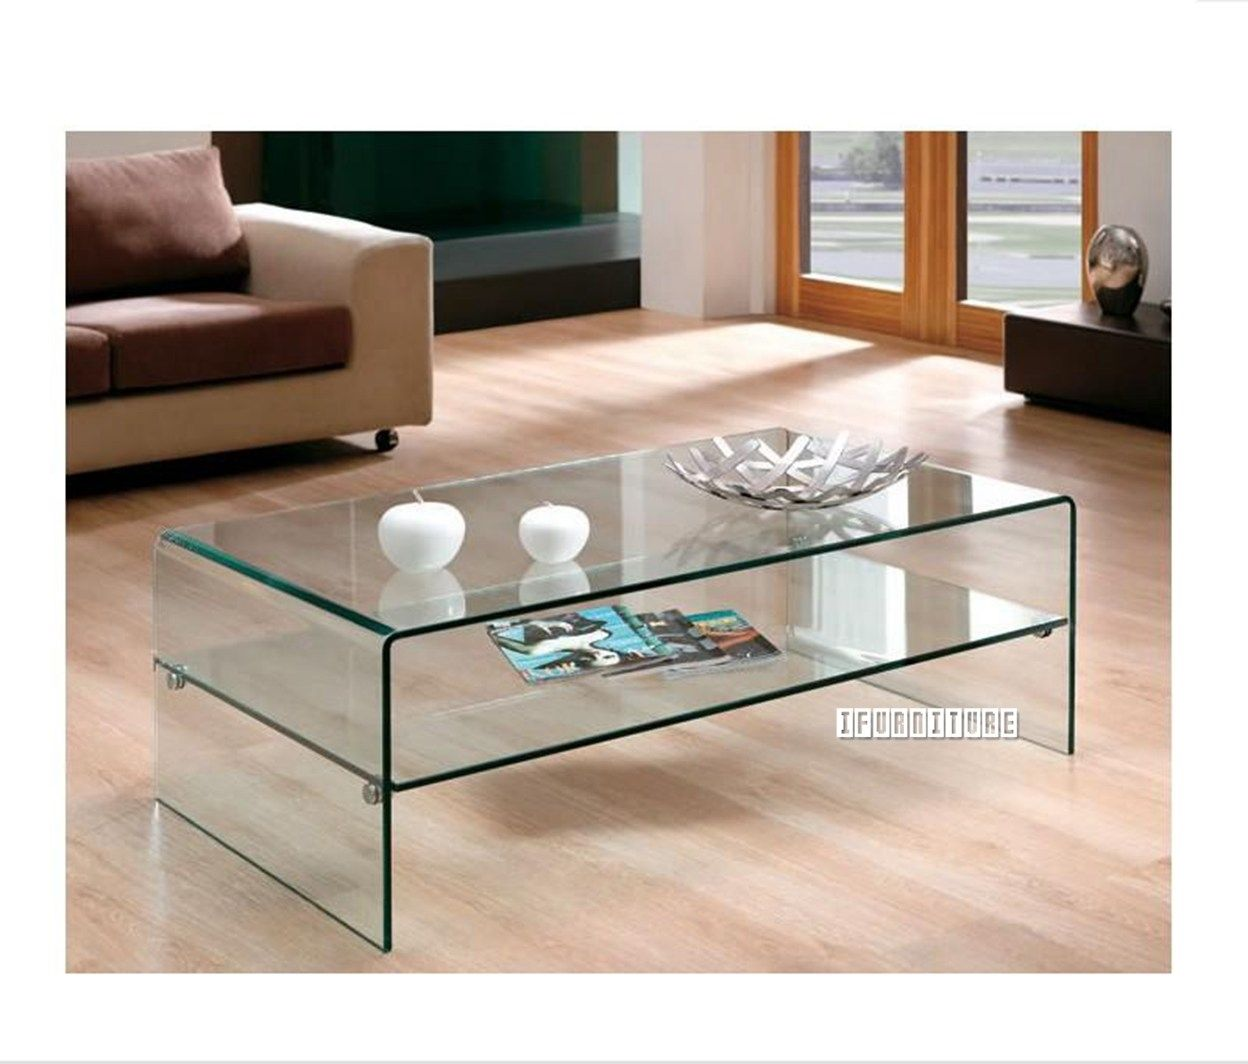 MURANO Bent Glass Coffee Table With Shelf